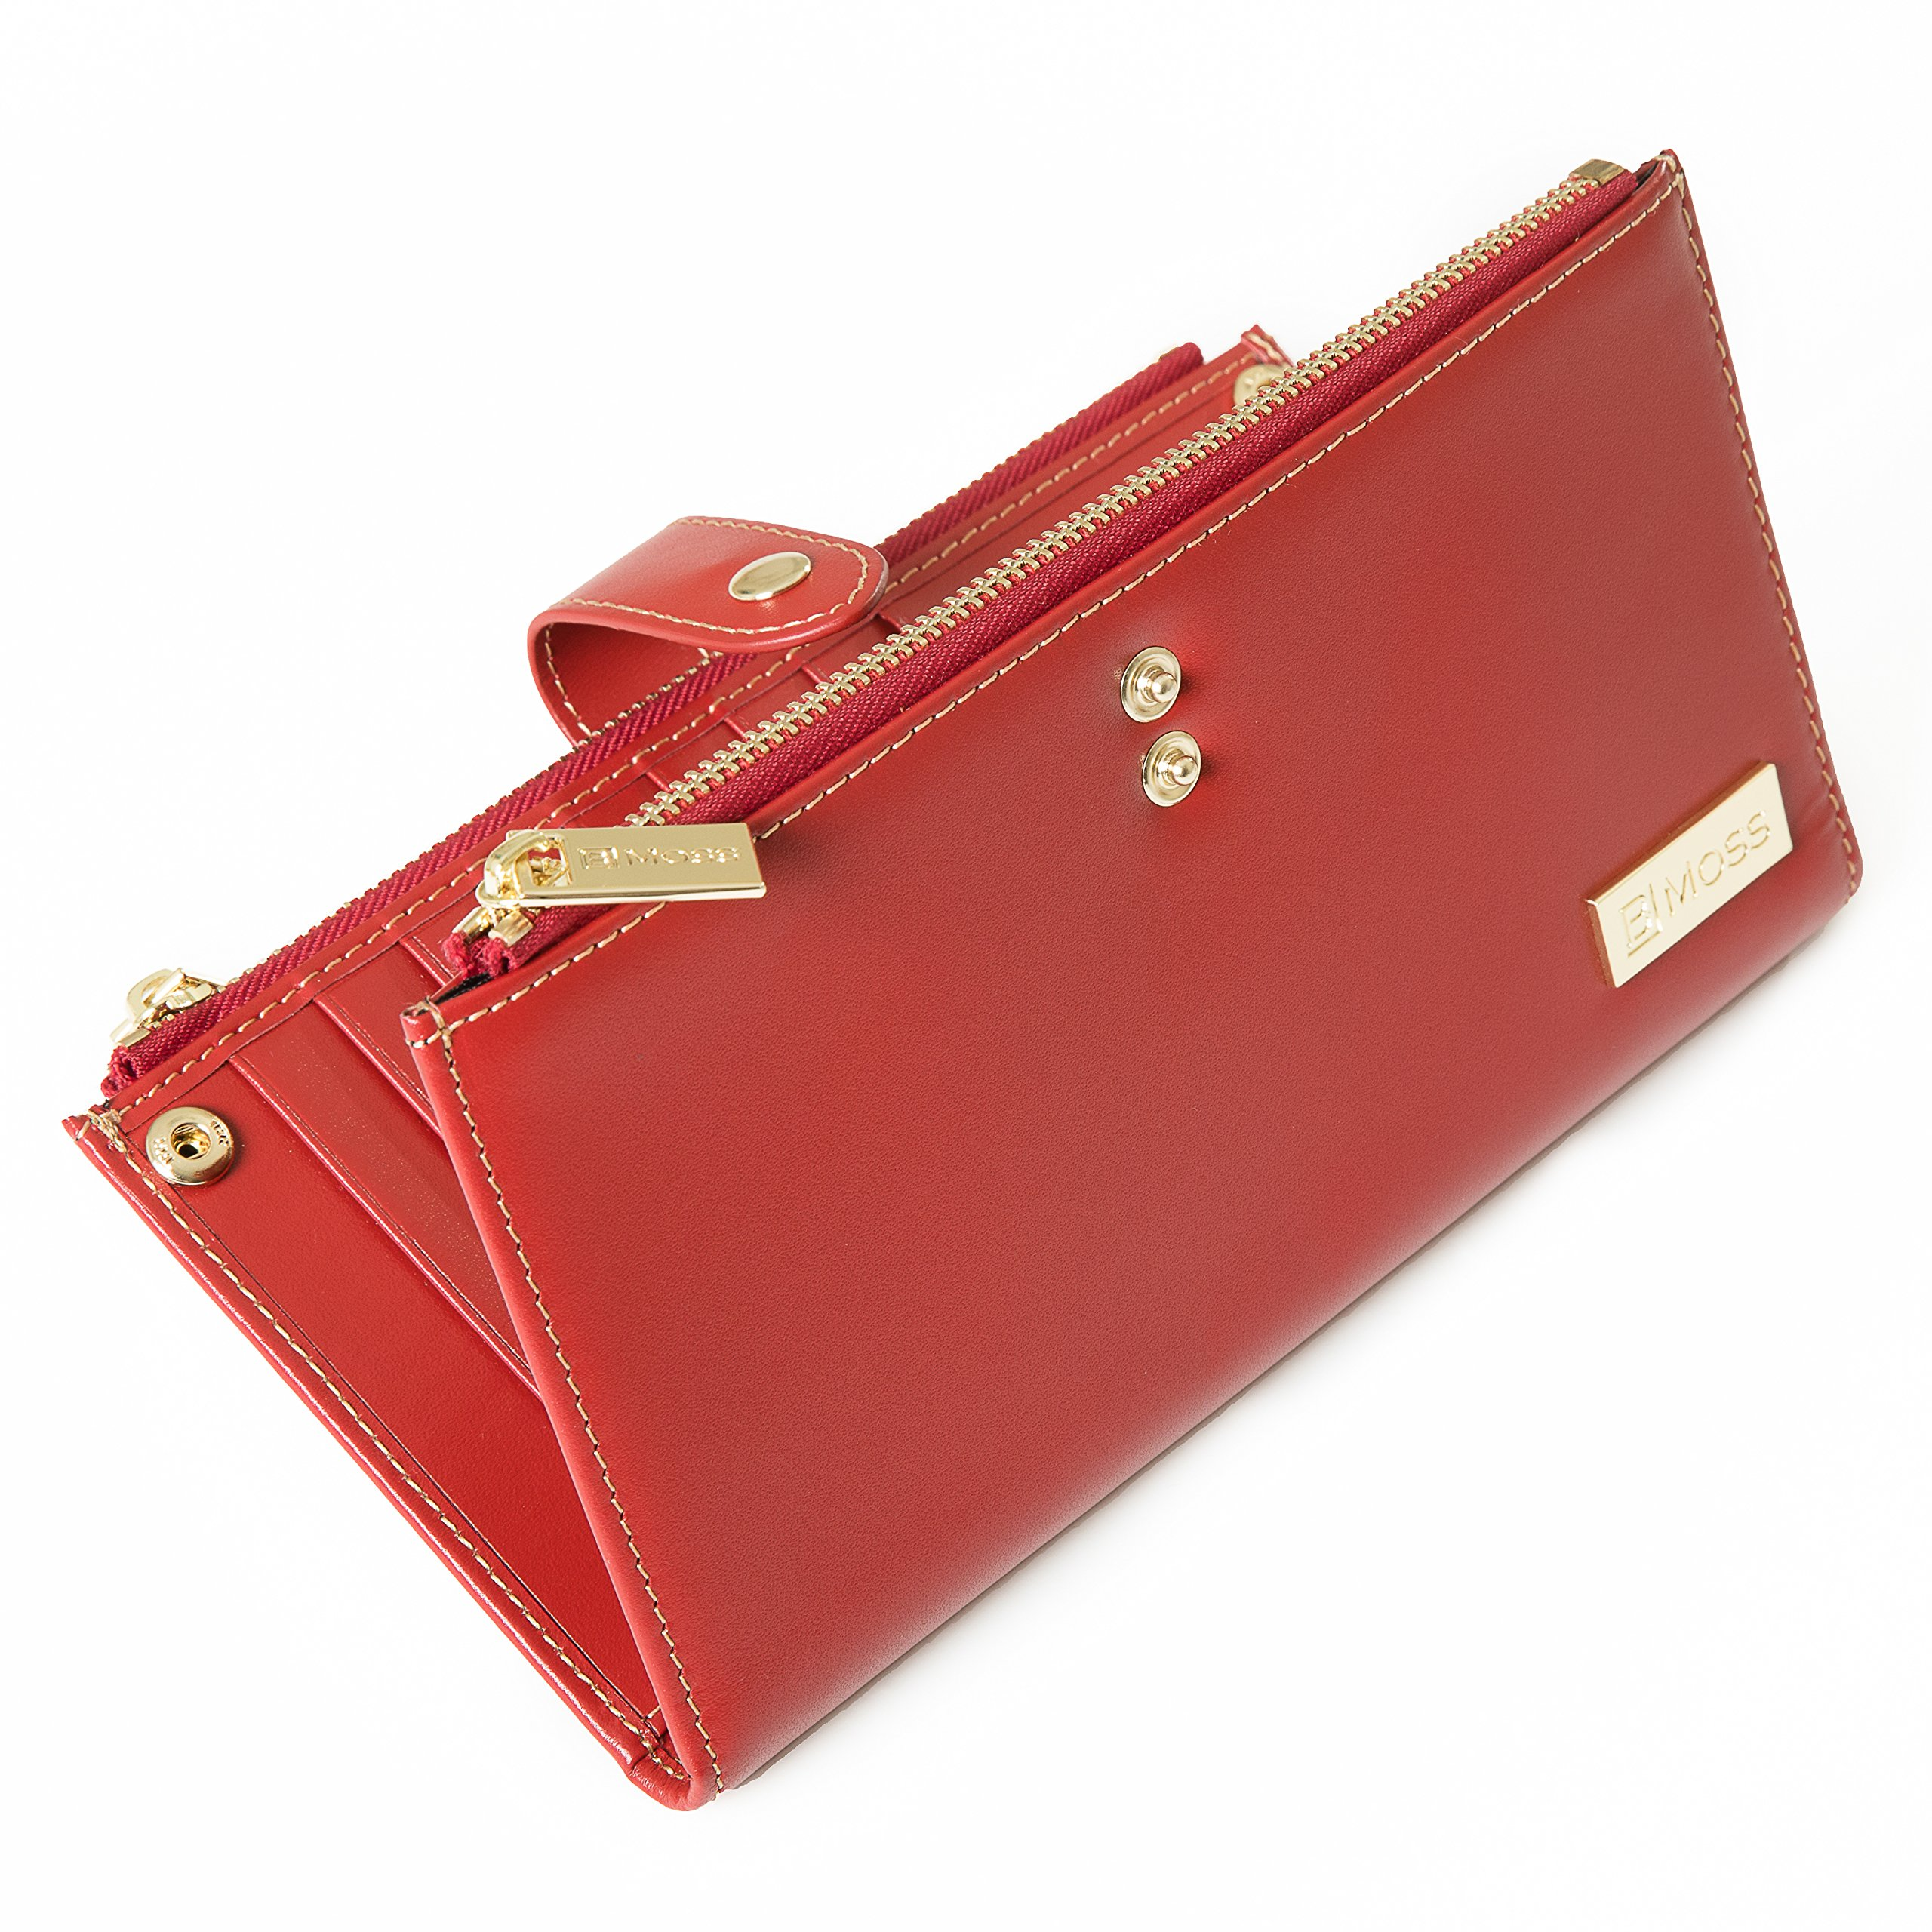 Womens RFID Blocking Wallet & Card Organizer Genuine Leather With 18 Slots + FREE Booklet By BMoss Red